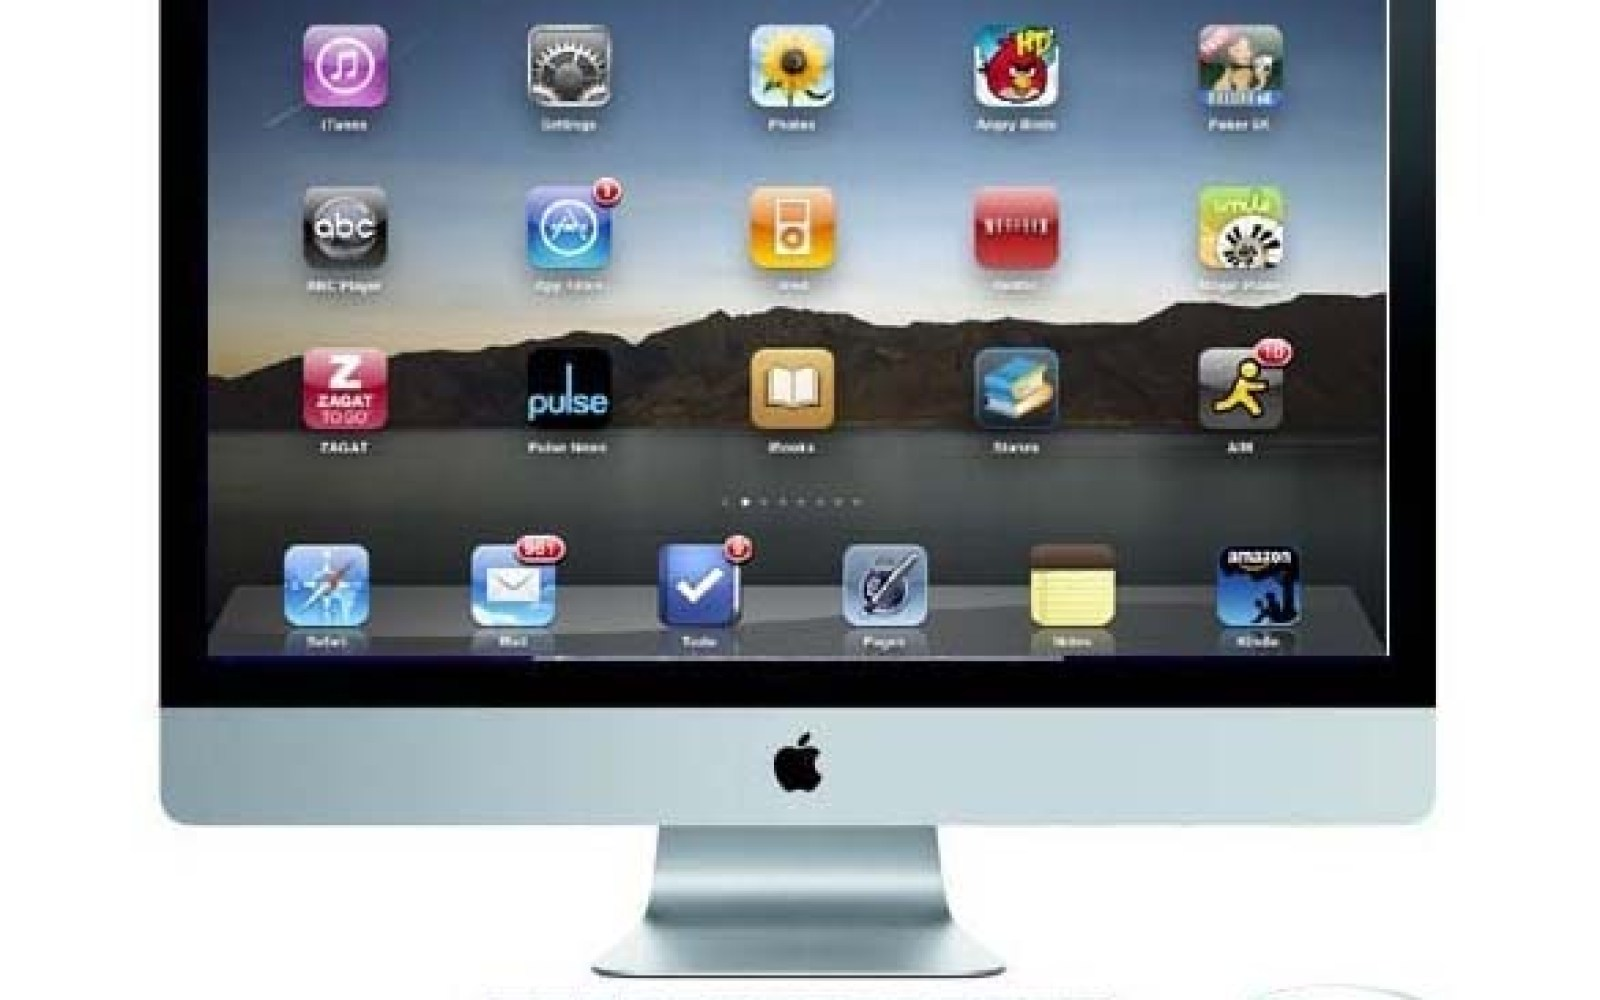 Analyst suggestion of converged iOS/OS X device flies in face of Apple statements